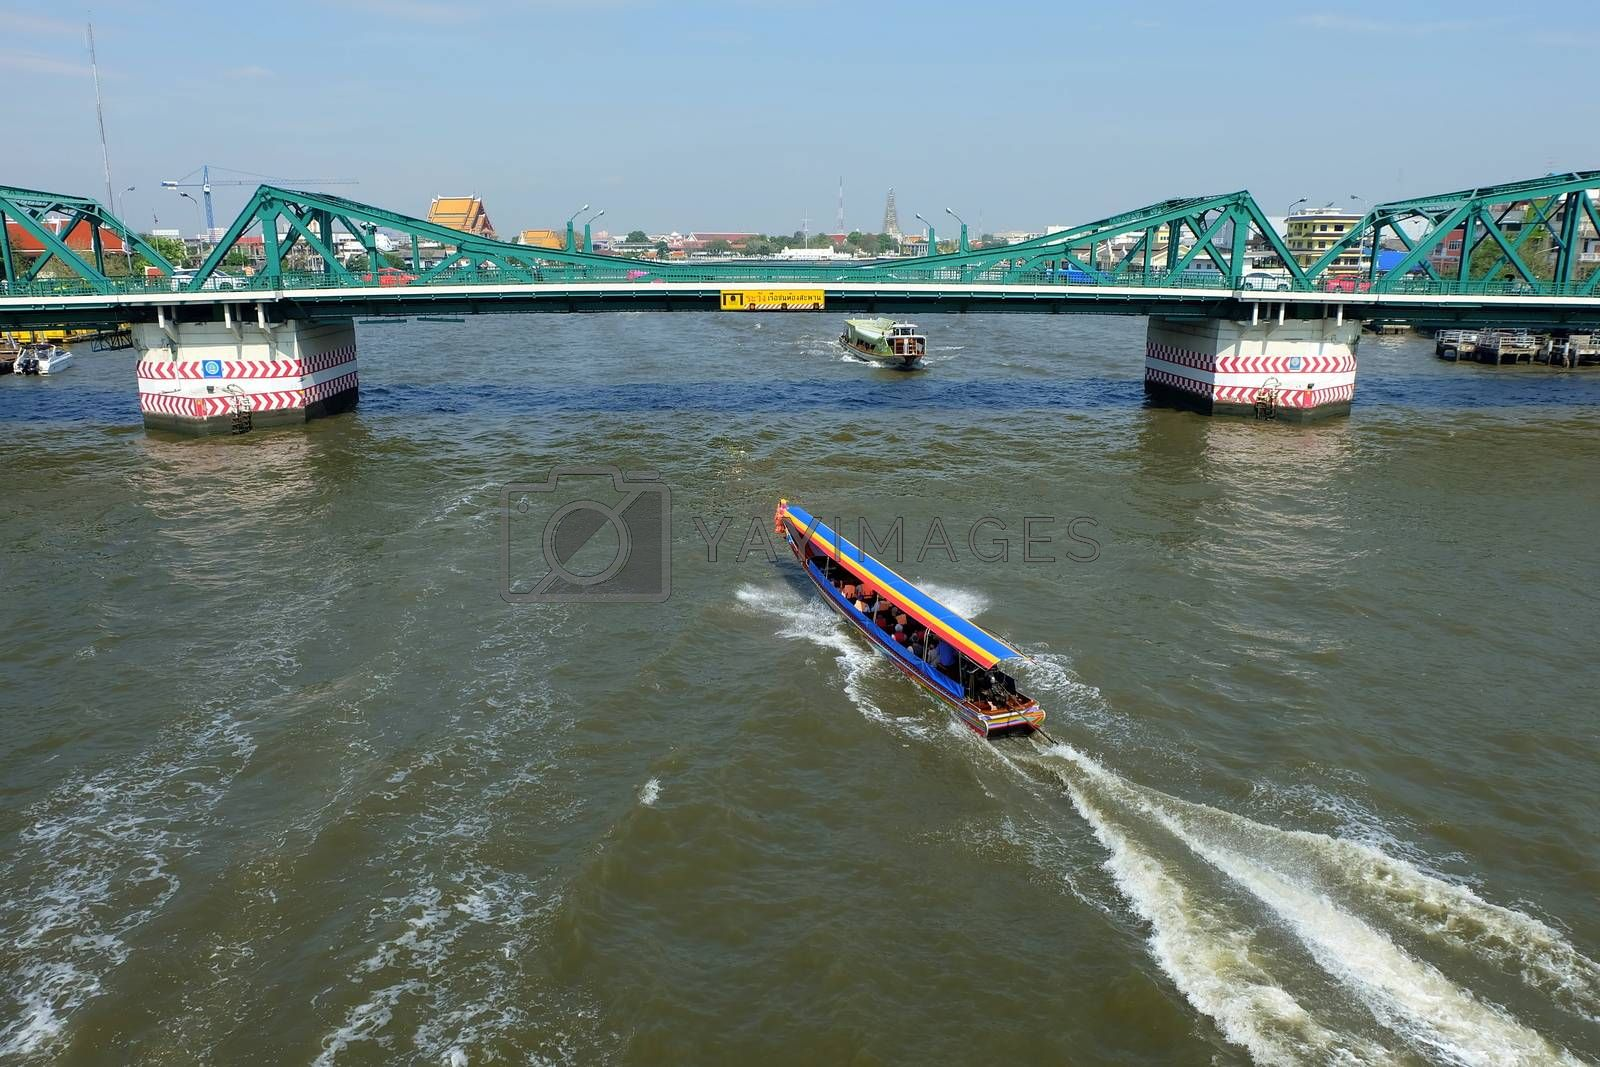 Scenery of Chaophraya River from Phra Phuttha Yodfa Bridge. Chaophraya River is the major river in Thailand.